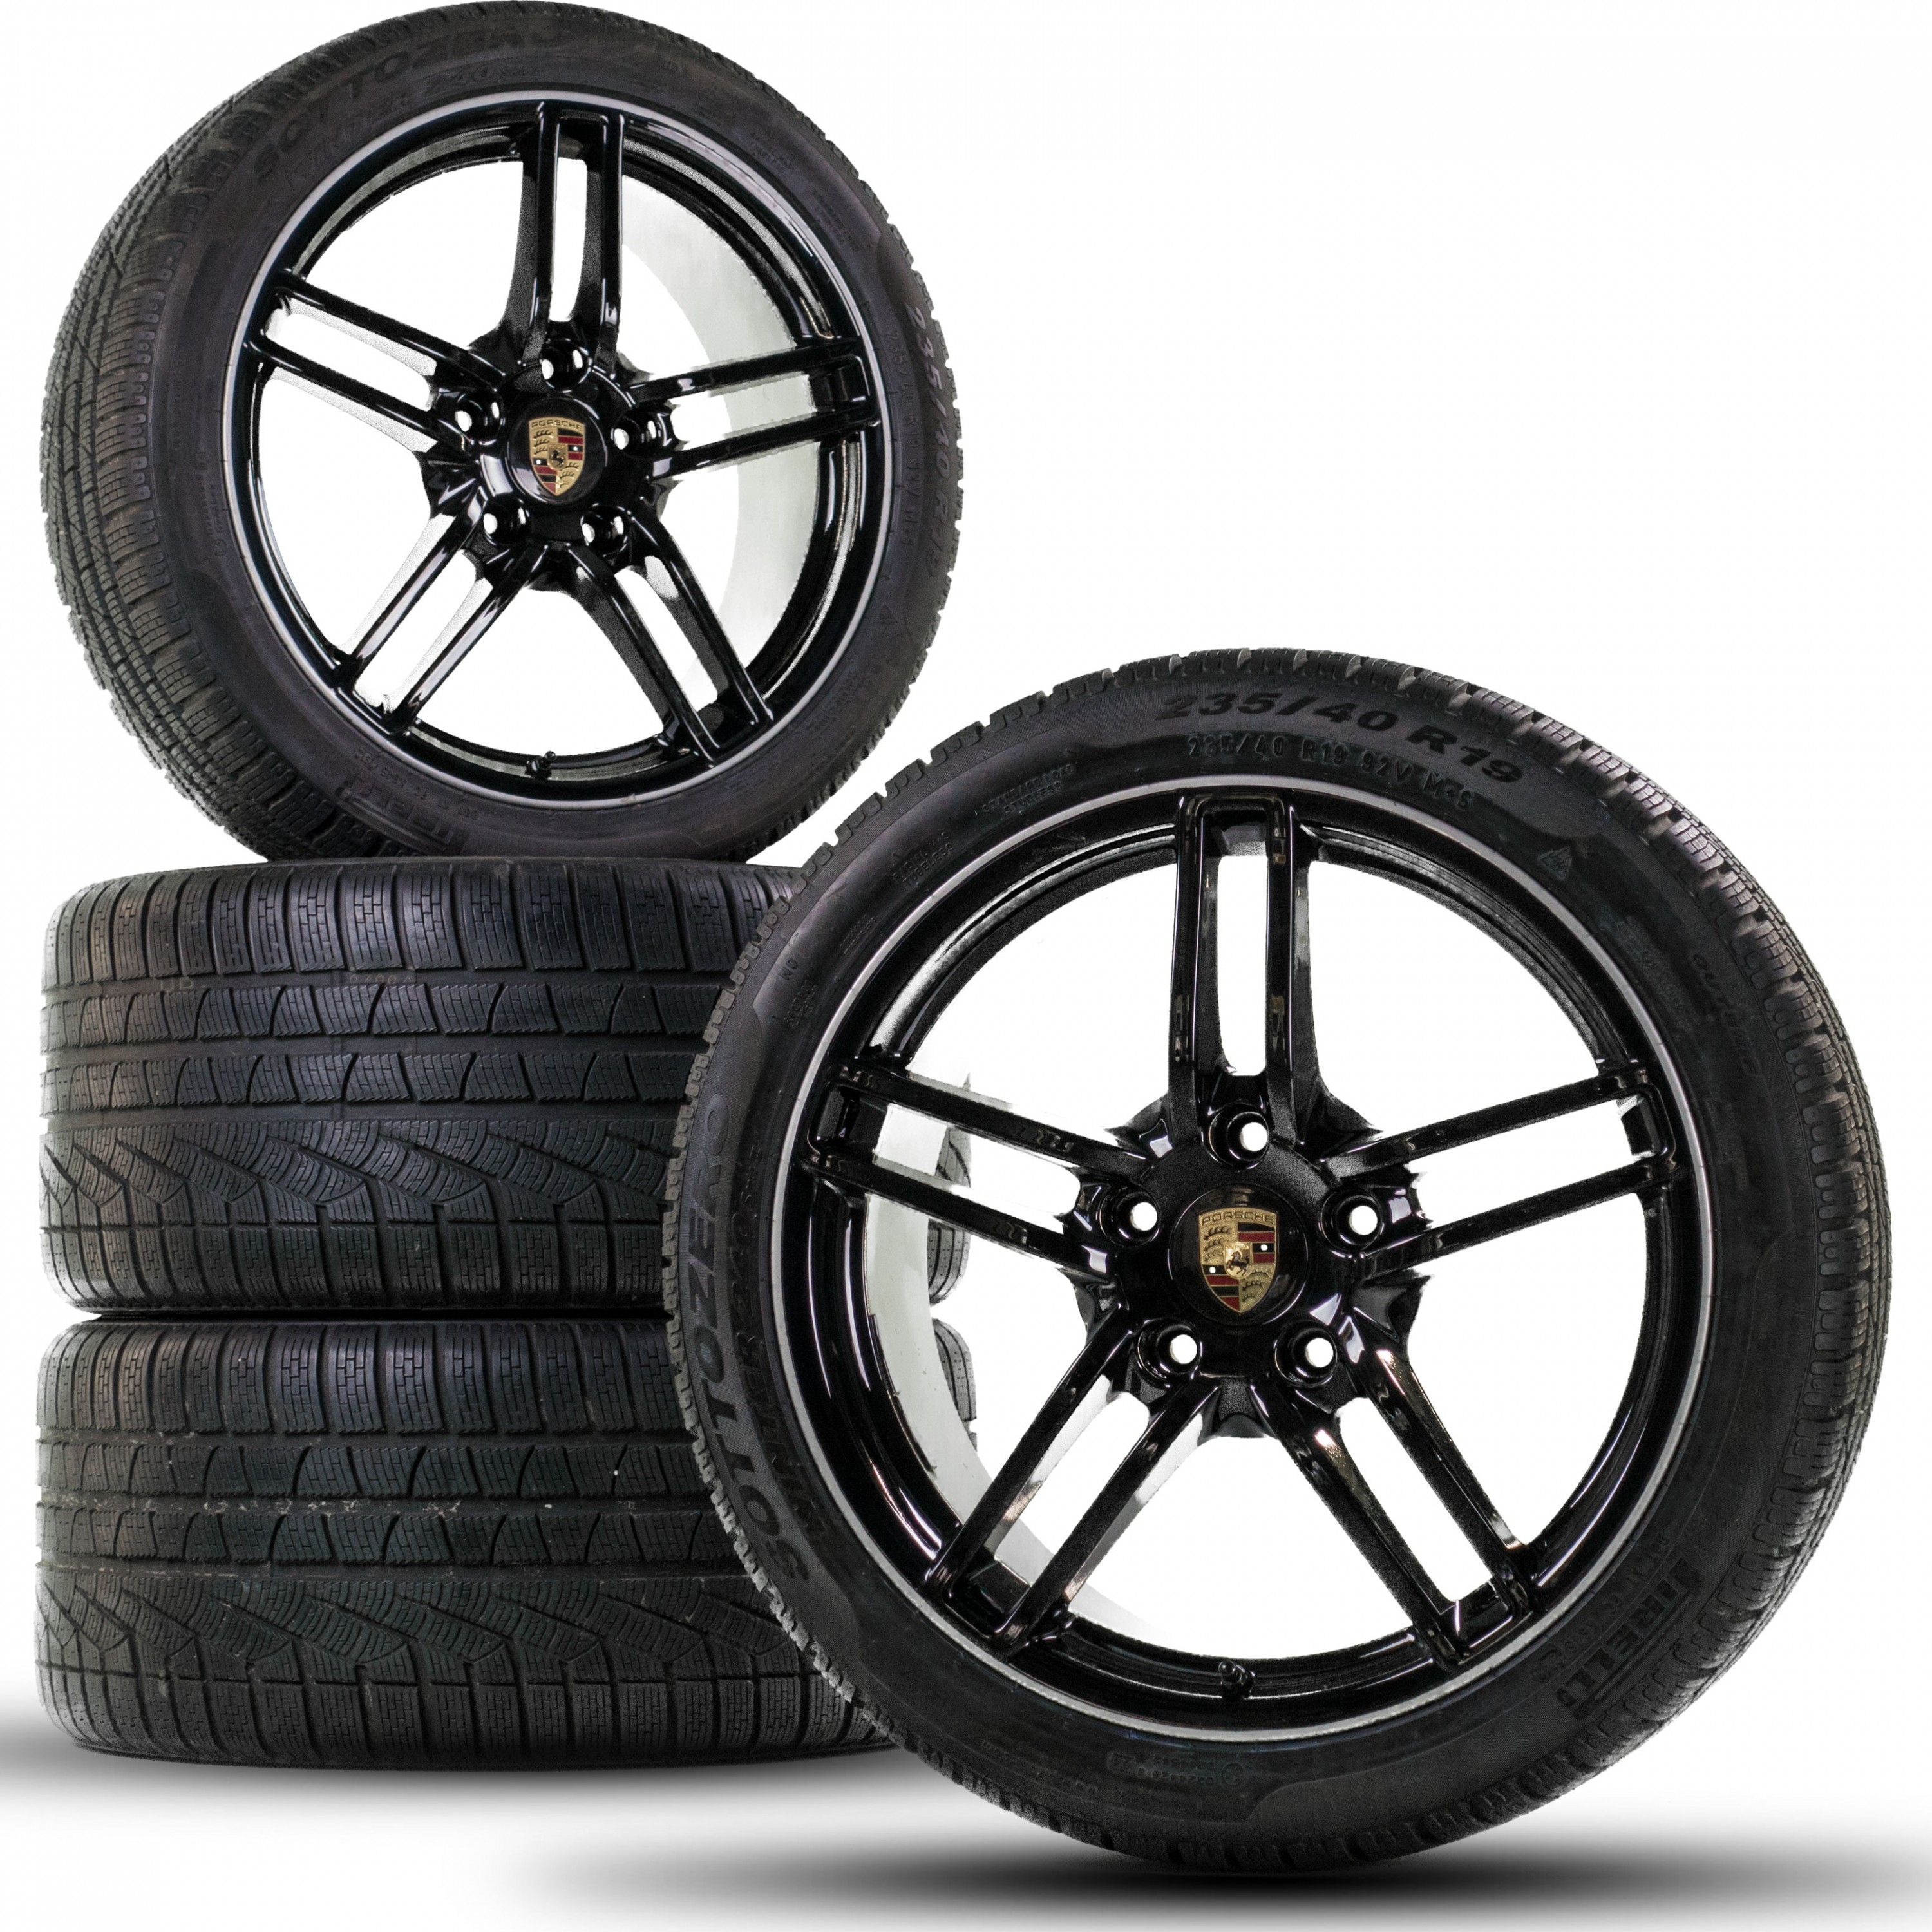 19 Inch Tires | Best Upcoming Cars Reviews